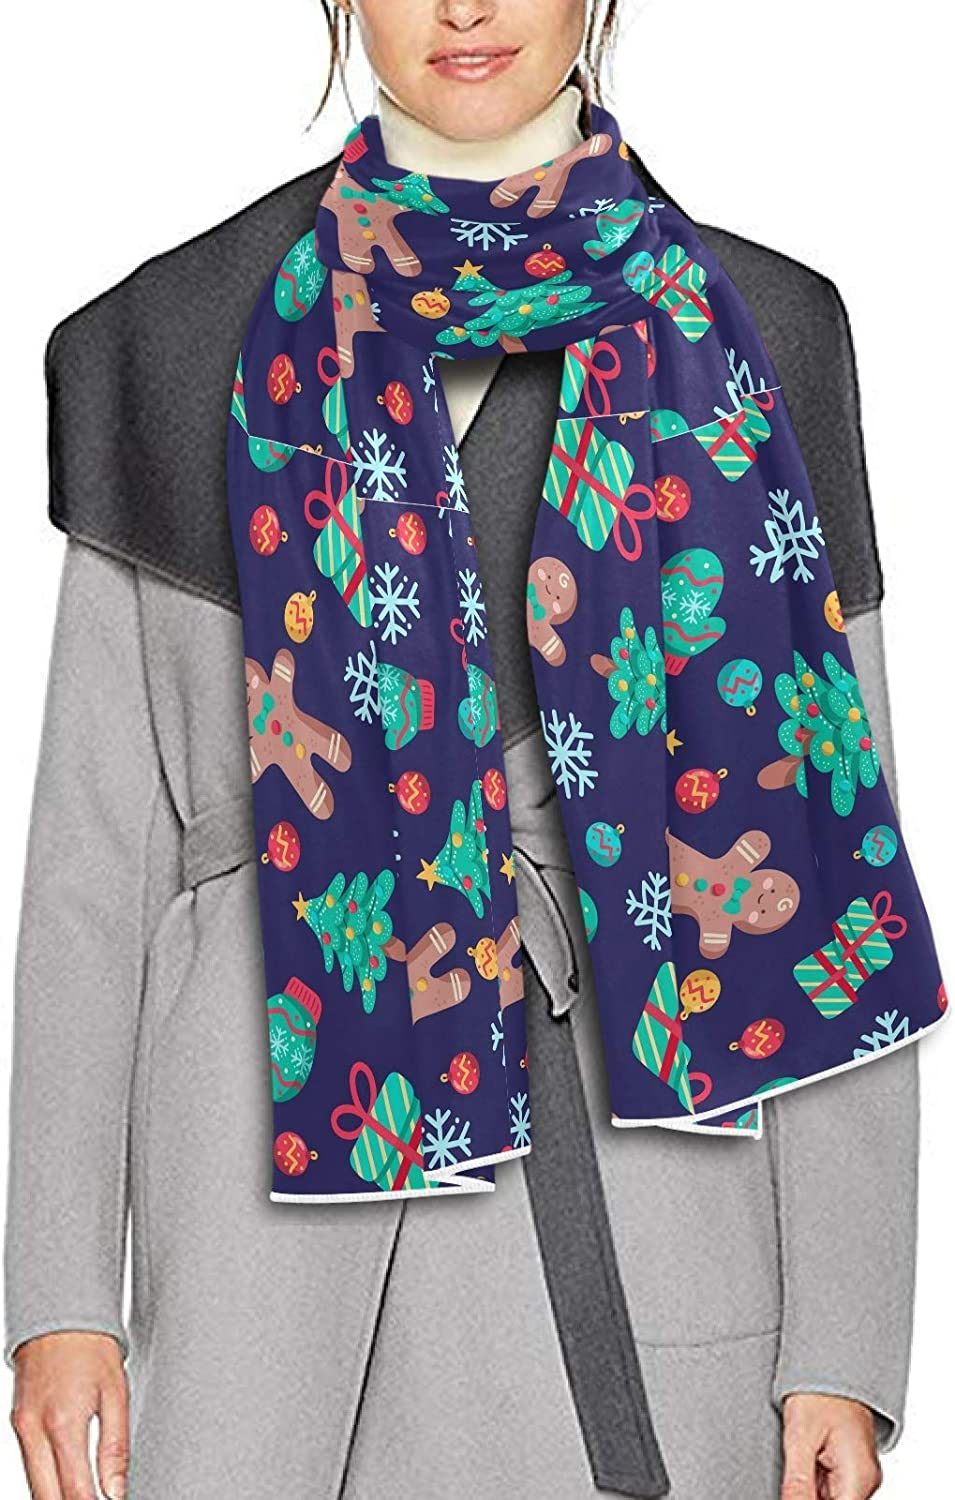 Scarf for Women and Men Cute Chritmas Pattern Gingerbreads Christmas Trees Blanket Shawl Scarf wraps Thick Soft Winter Large Scarves Lightweight